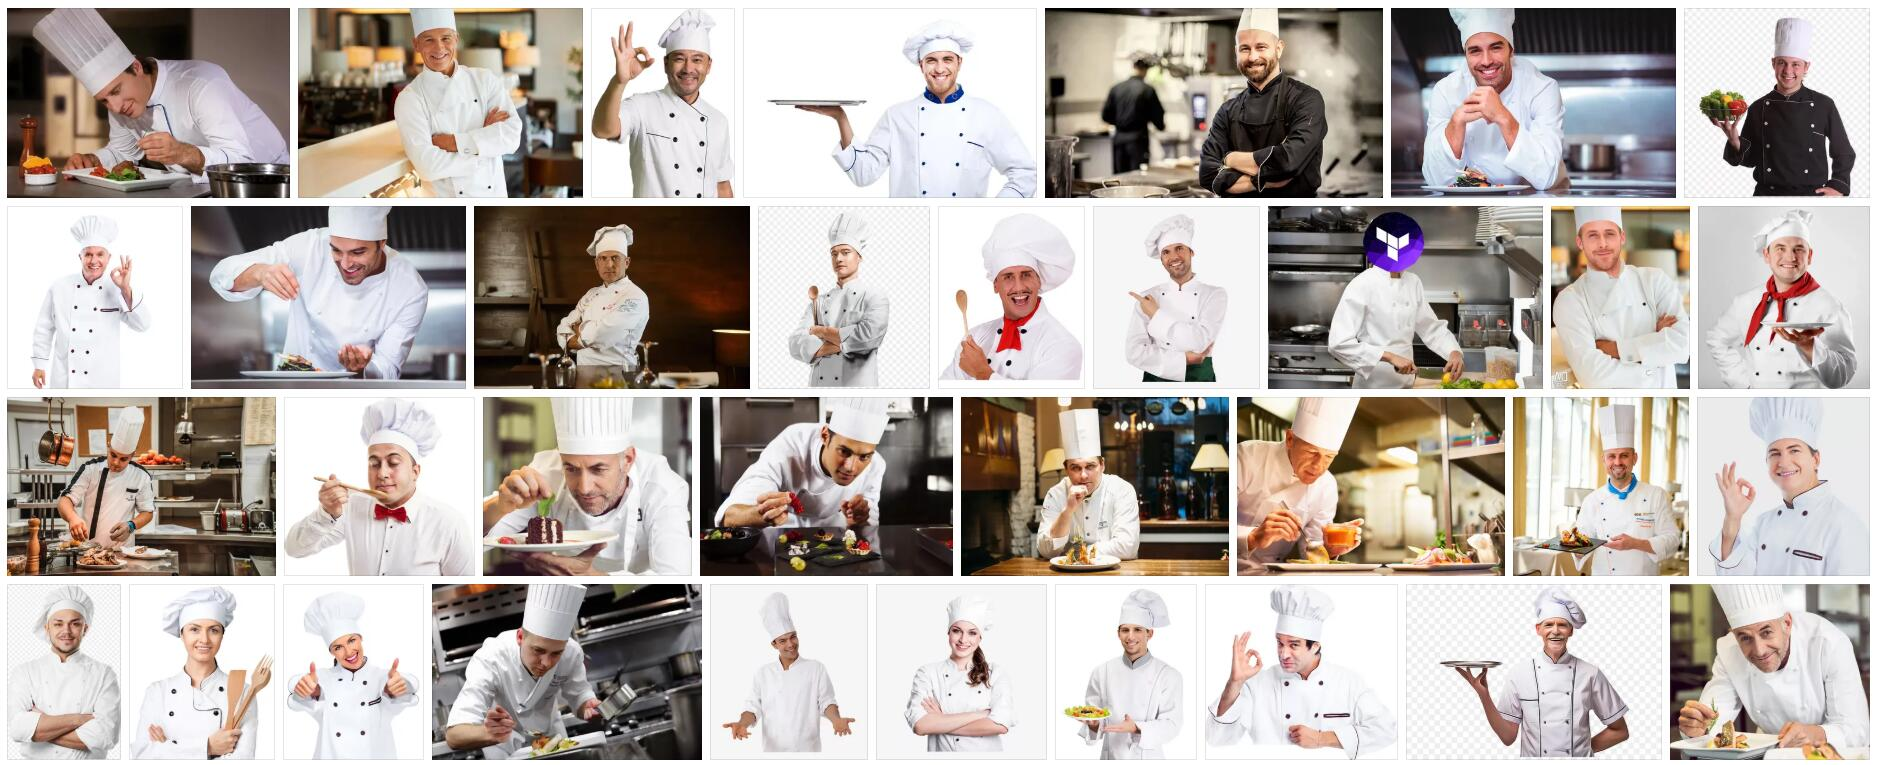 What is Chef